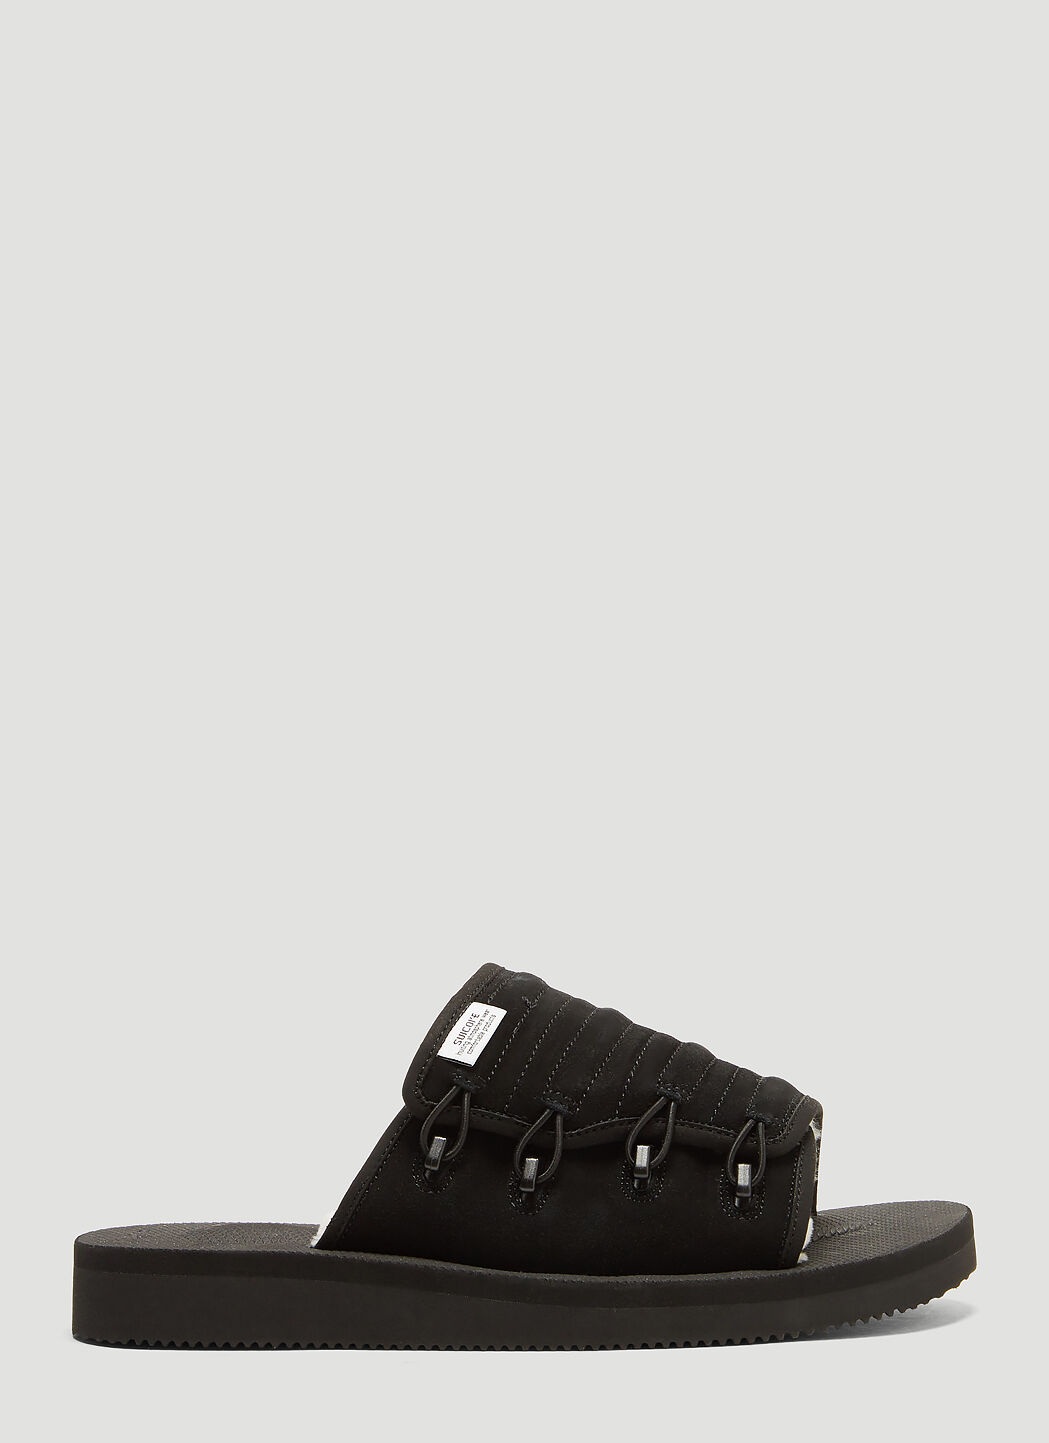 Suicoke Mura Mab Sandals in Black